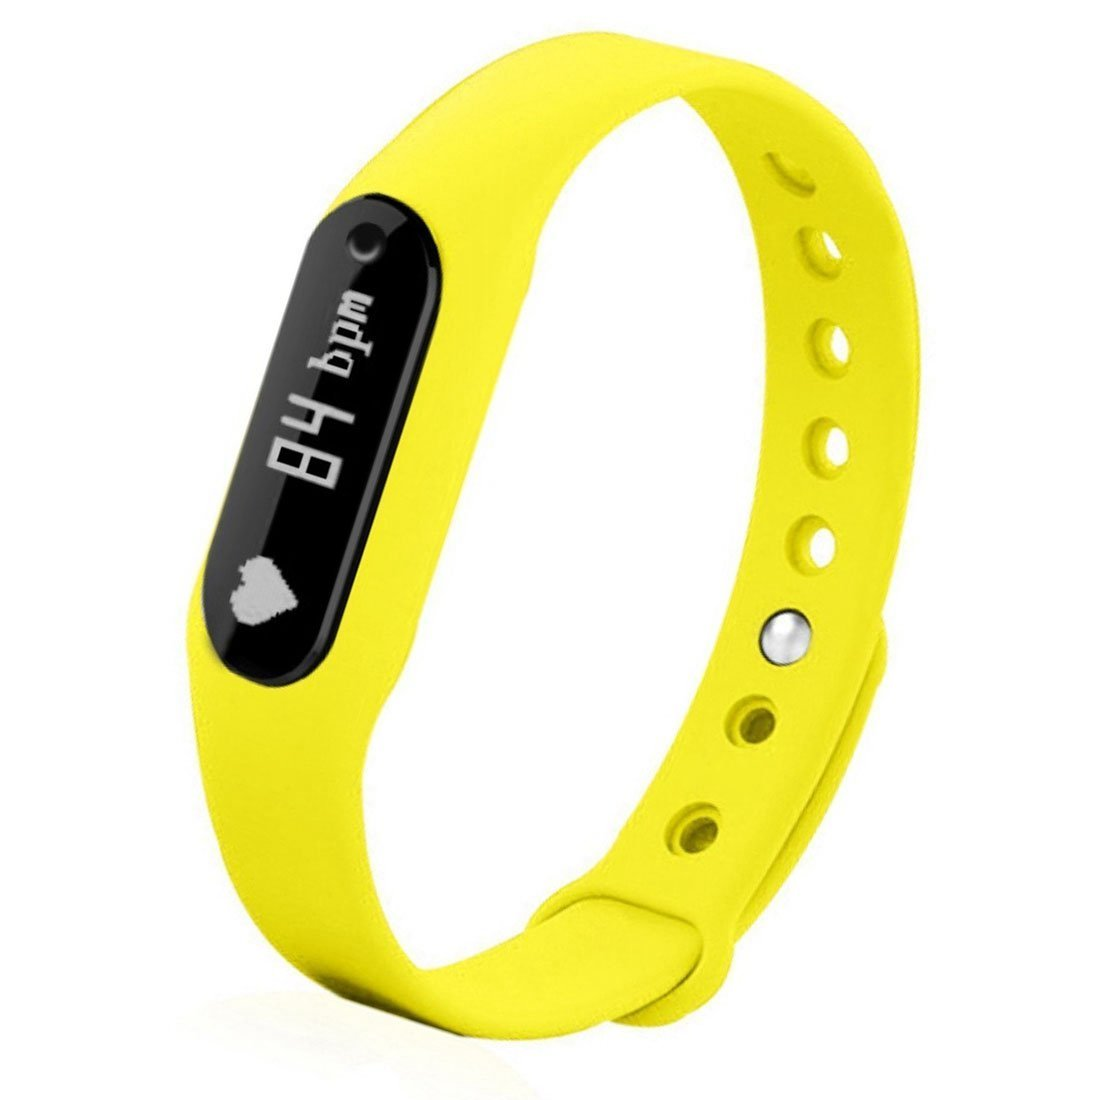 Bestseller2888 Smart Band Heart Rate Monitor/ Smartband/ Smart Wristband/ Smart Bracelet Fitness Wearable Activity Tracker/ Waterproof Bluetooth Health Fitness Band-Yellow